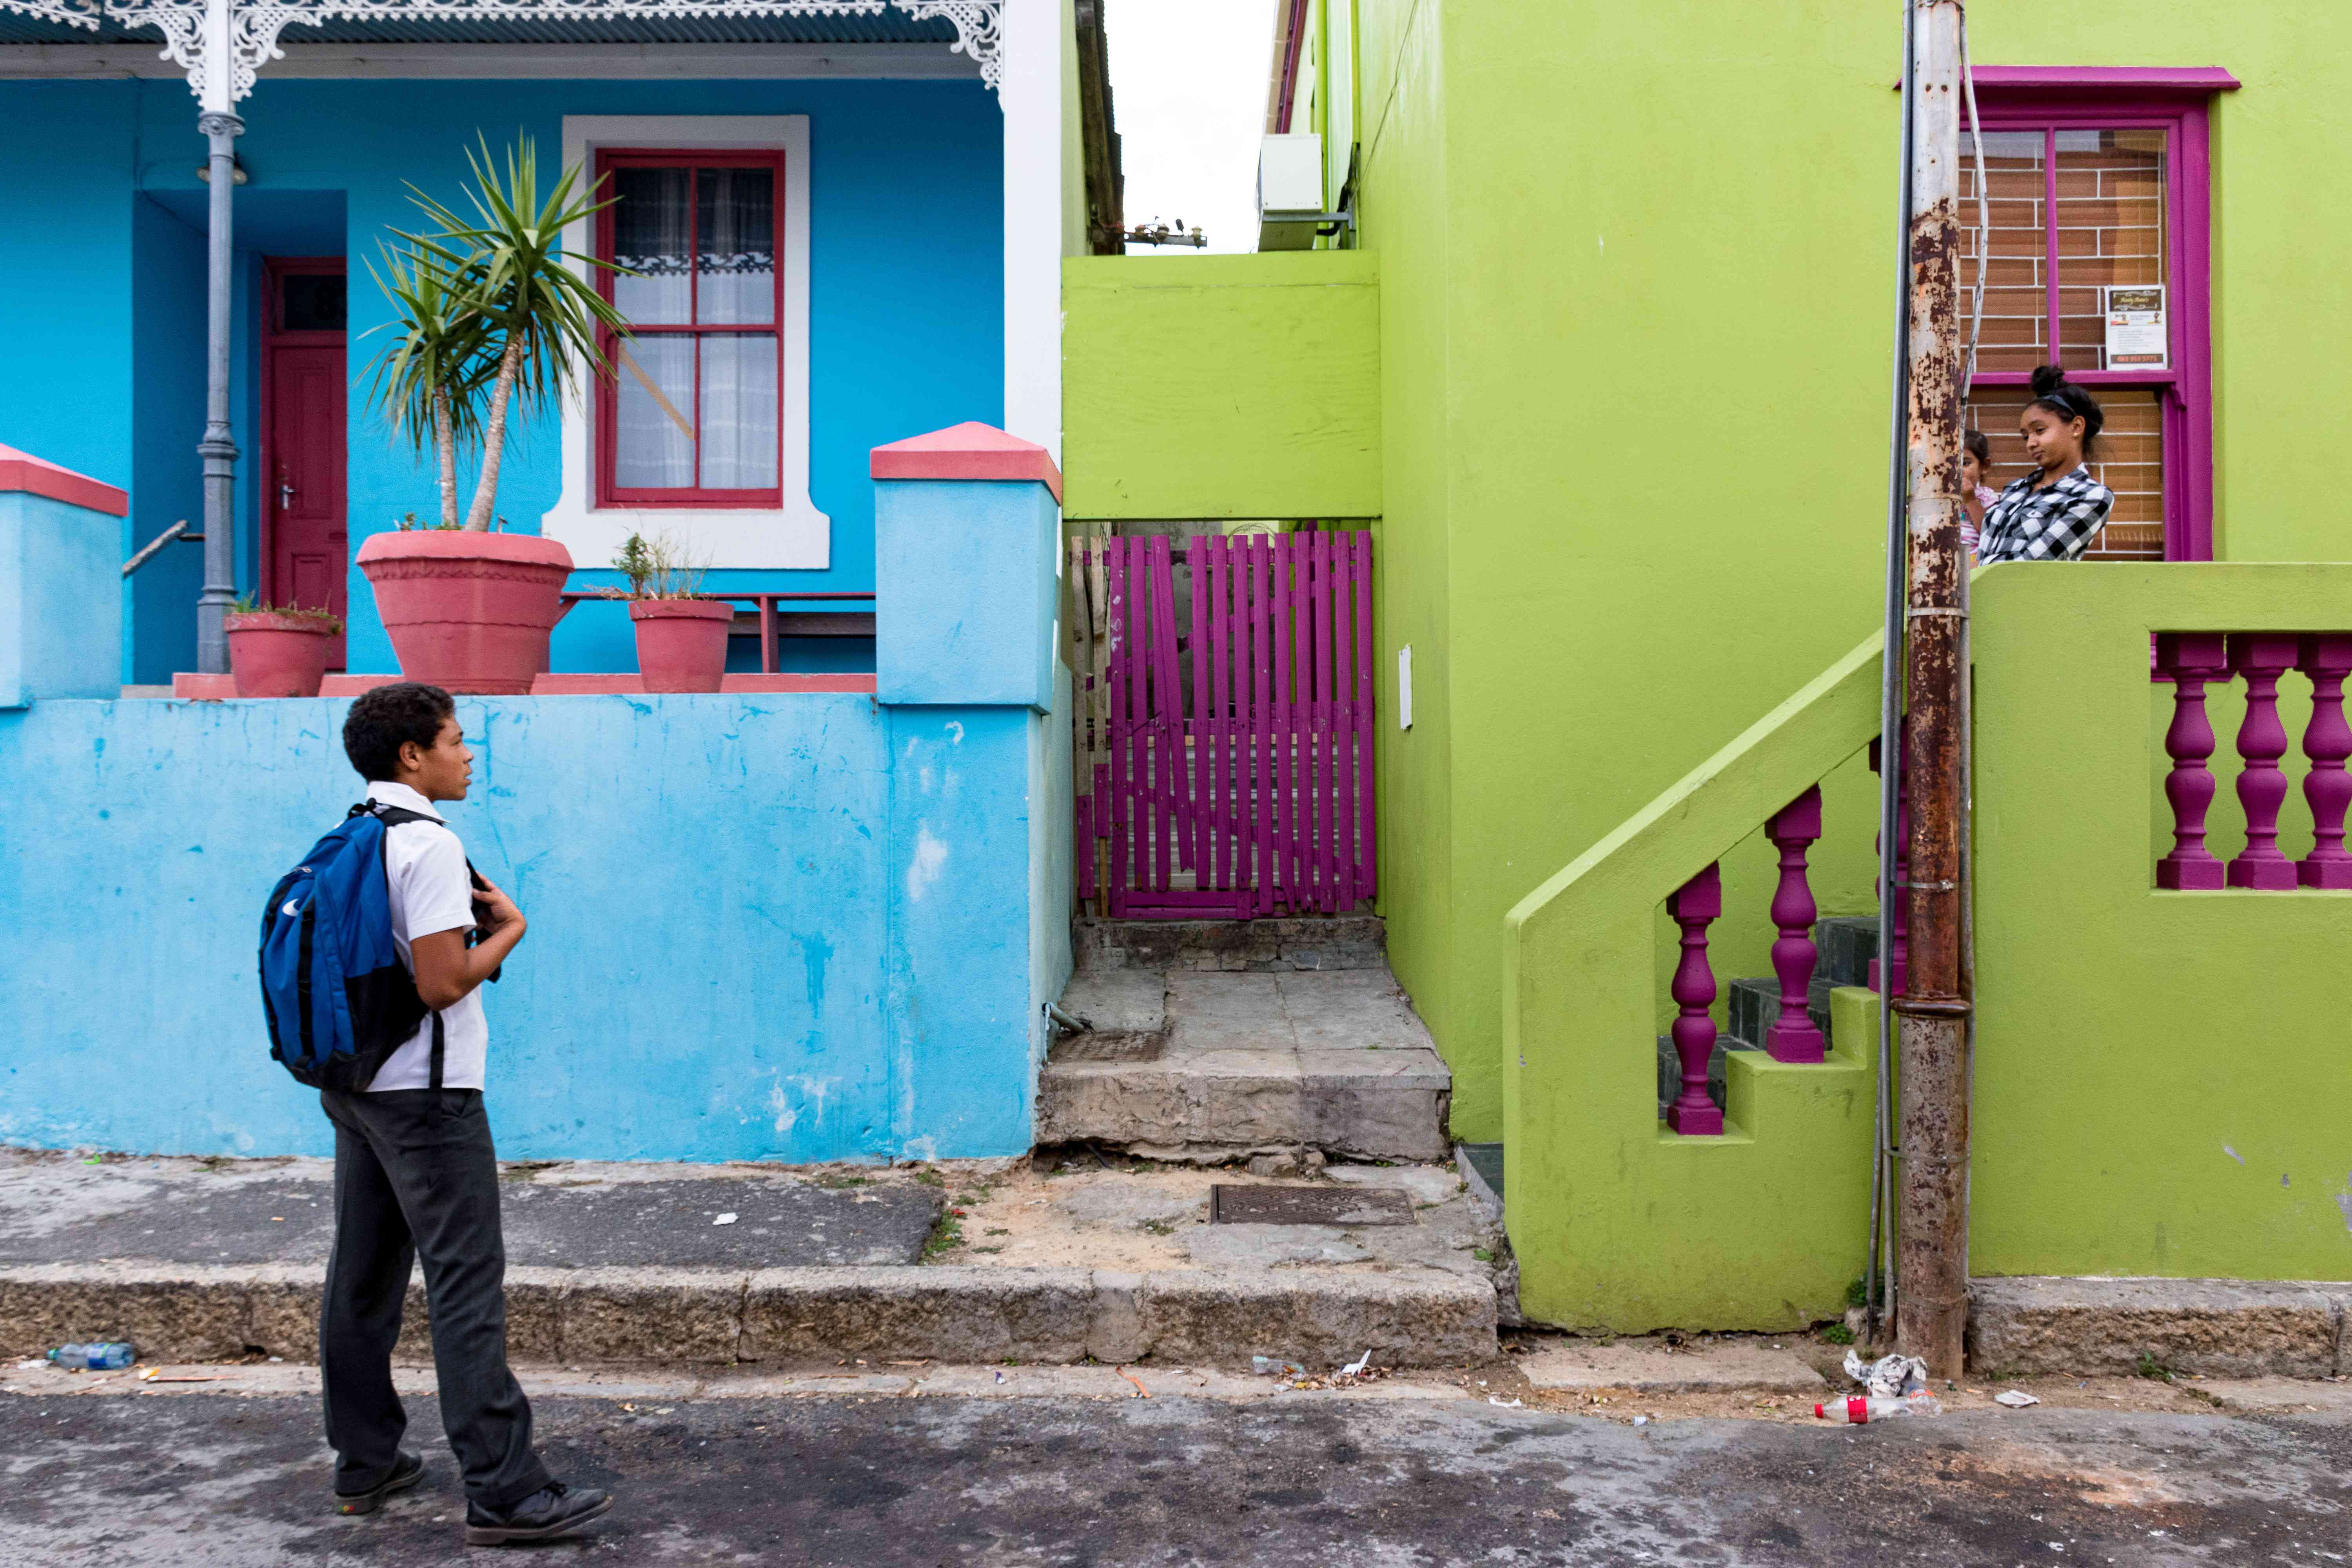 Two people talking infront of very colorful houses